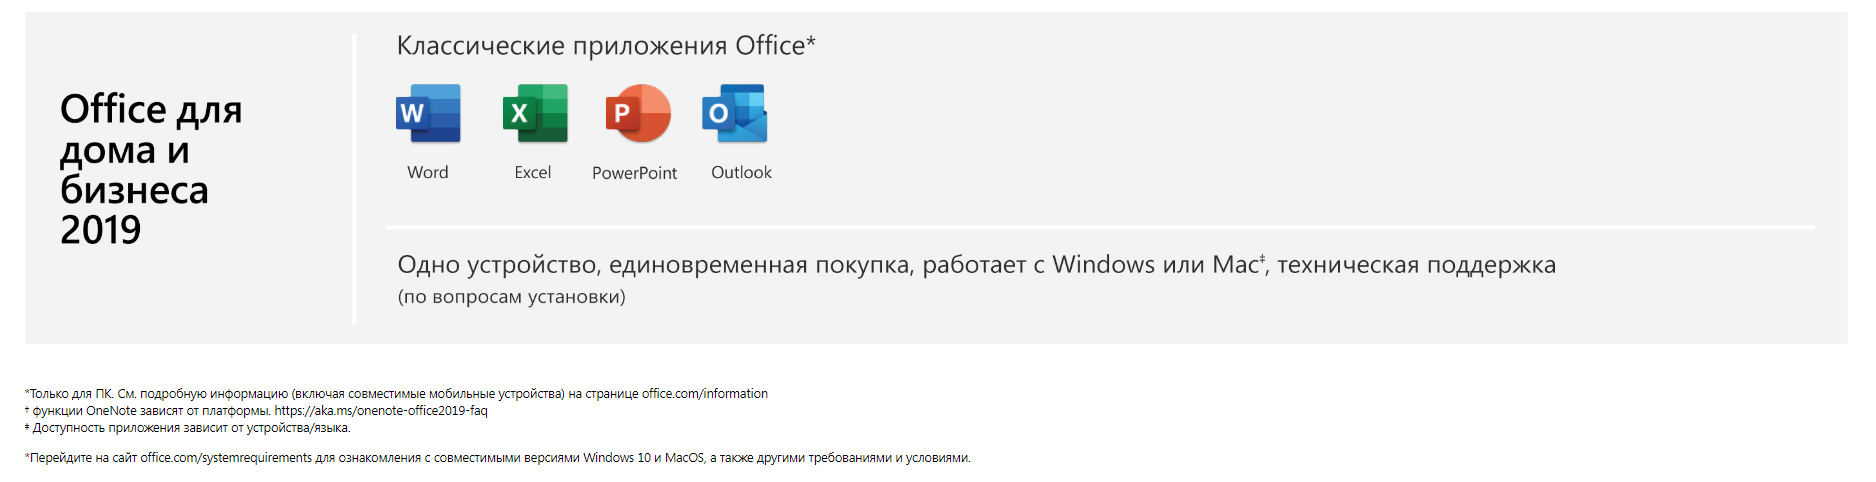 Преимущества Office Home and Business 2019